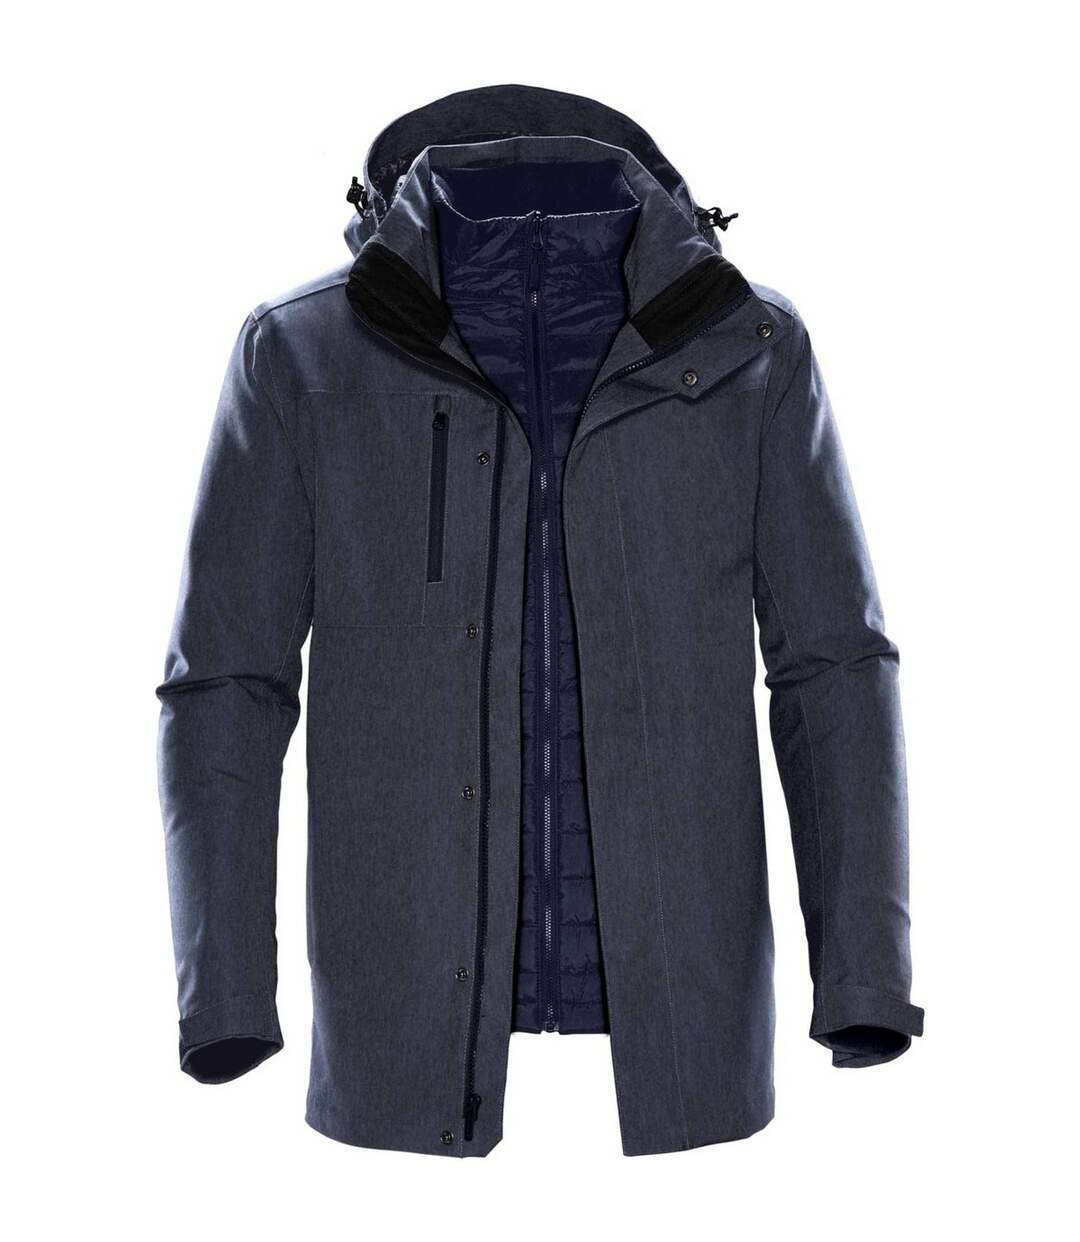 Stormtech Mens Avalanche System Jacket (Charcoal Twill) - UTBC4117